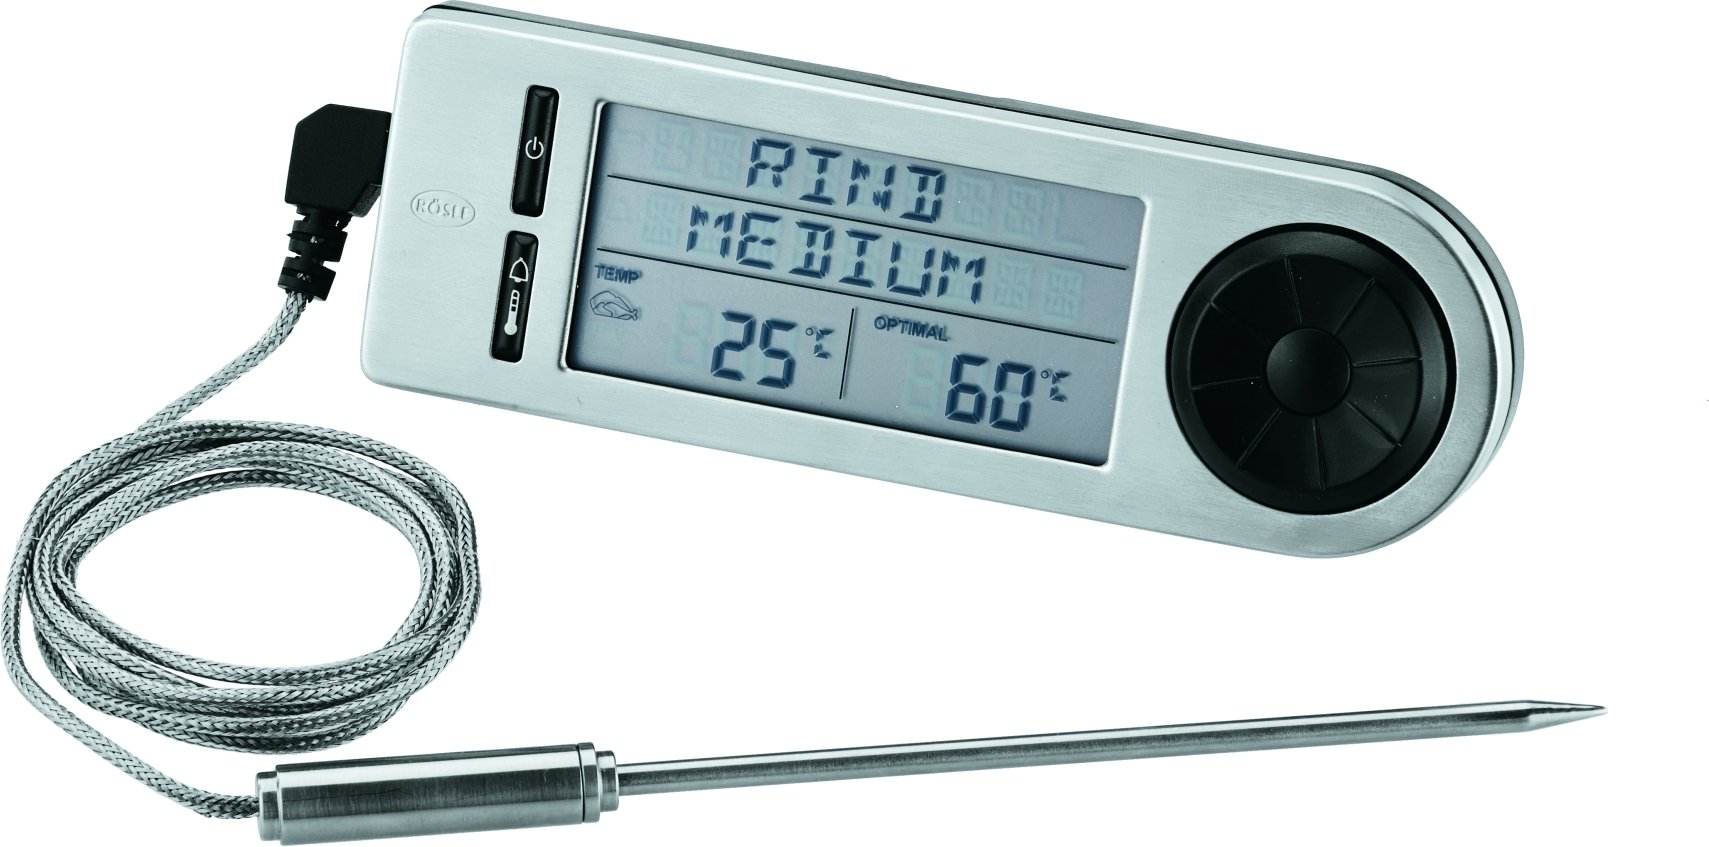 R?sle digitale thermometer